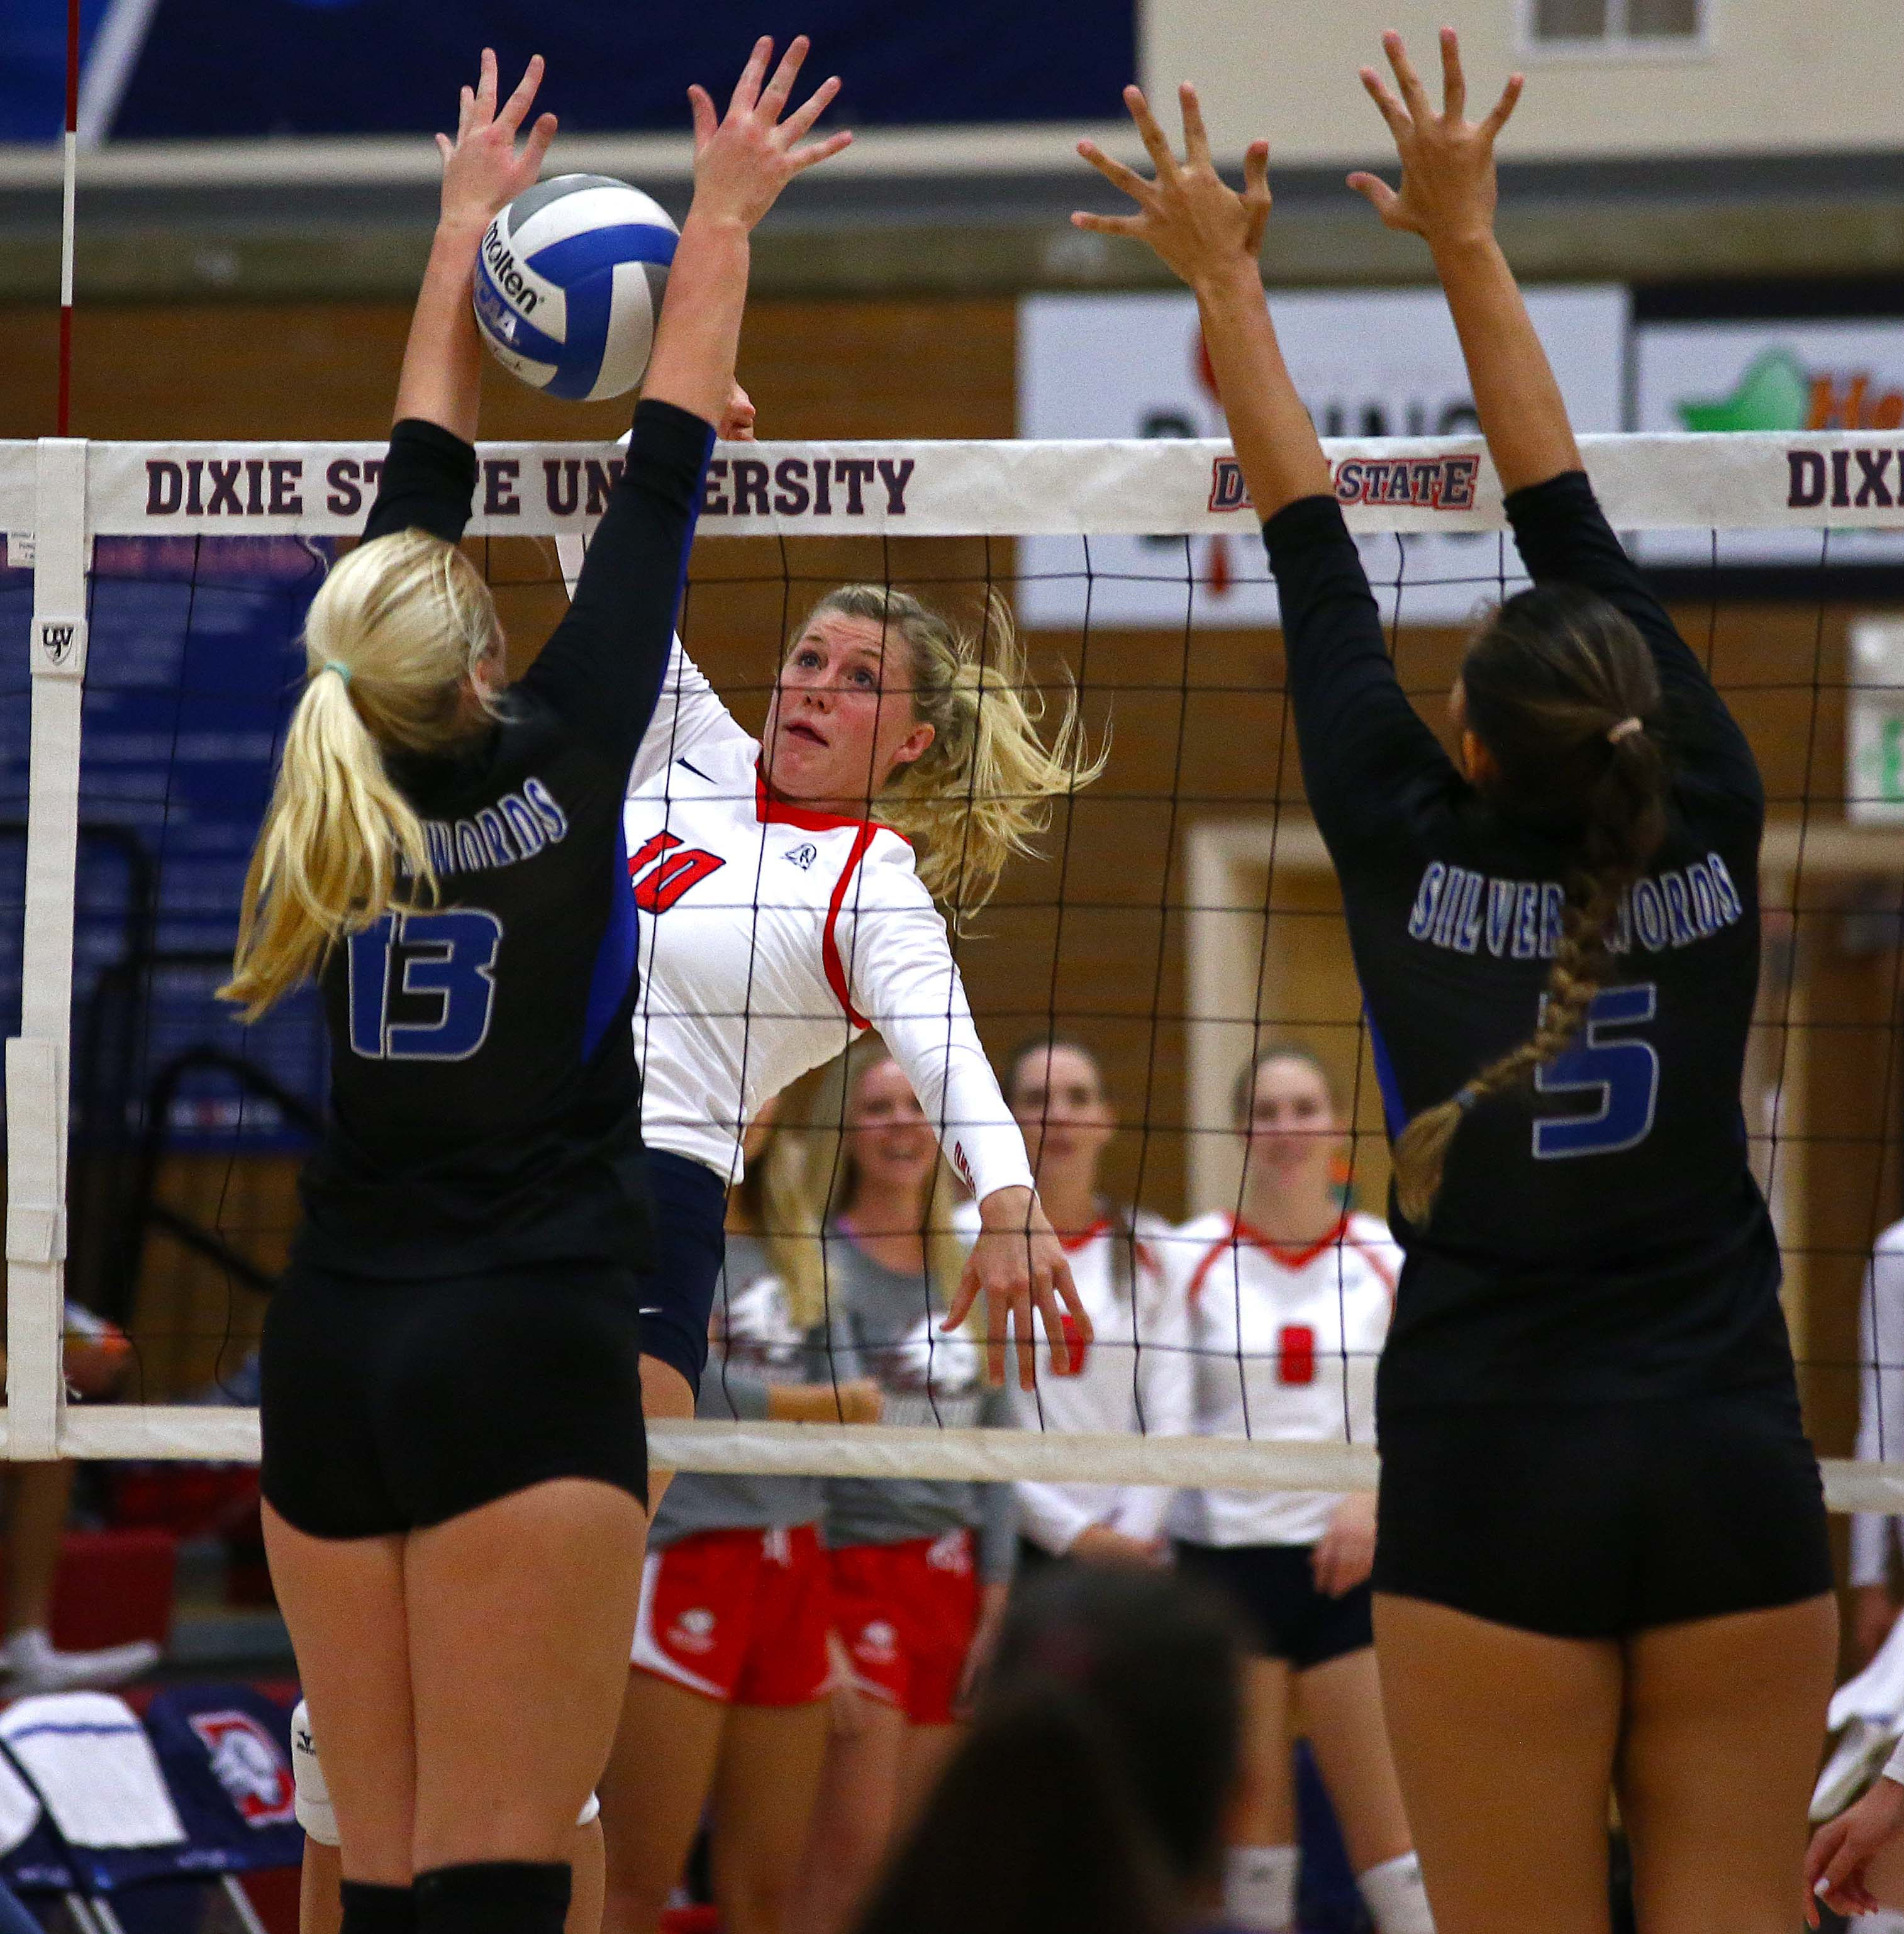 Dixie State's Brette Anderson (10), Dixie State University vs. Chaminade University, Volleyball, St. George, Utah, Oct. 1, 2016, | Photo by Robert Hoppie, ASPpix.com, St. George News